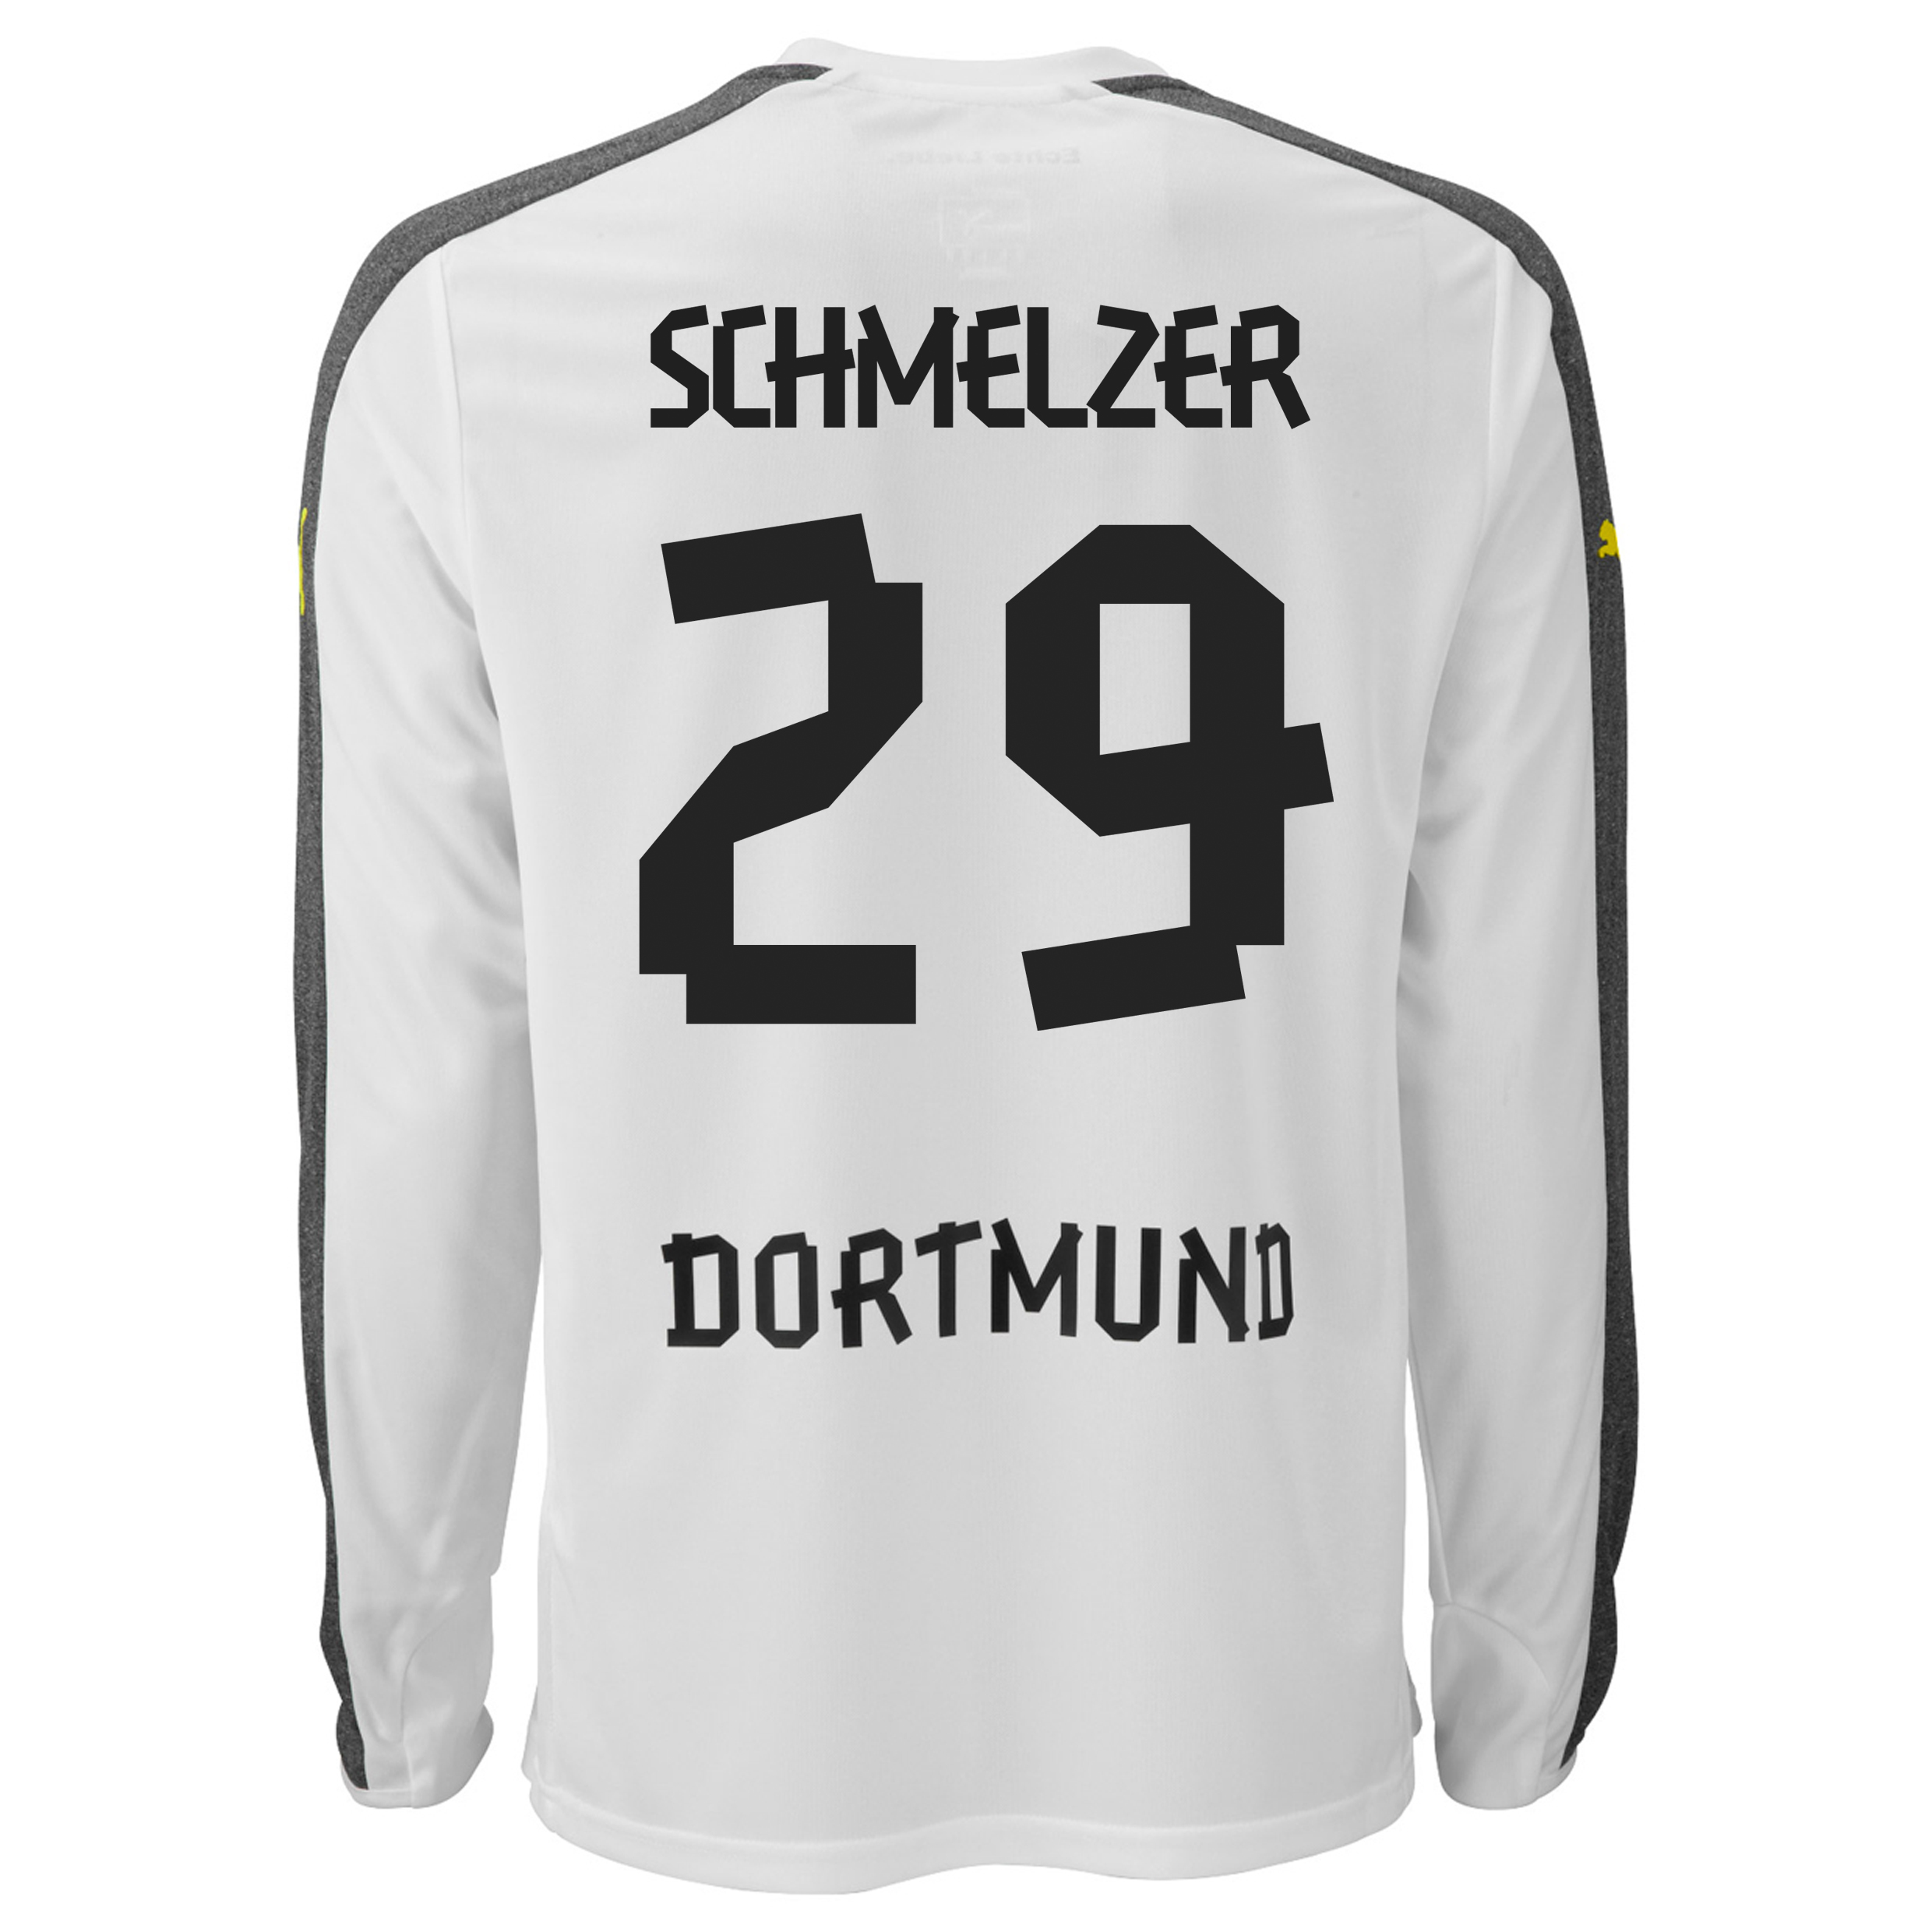 BVB Third Shirt 2013/14 - Long Sleeve with Schmelzer 29 printing